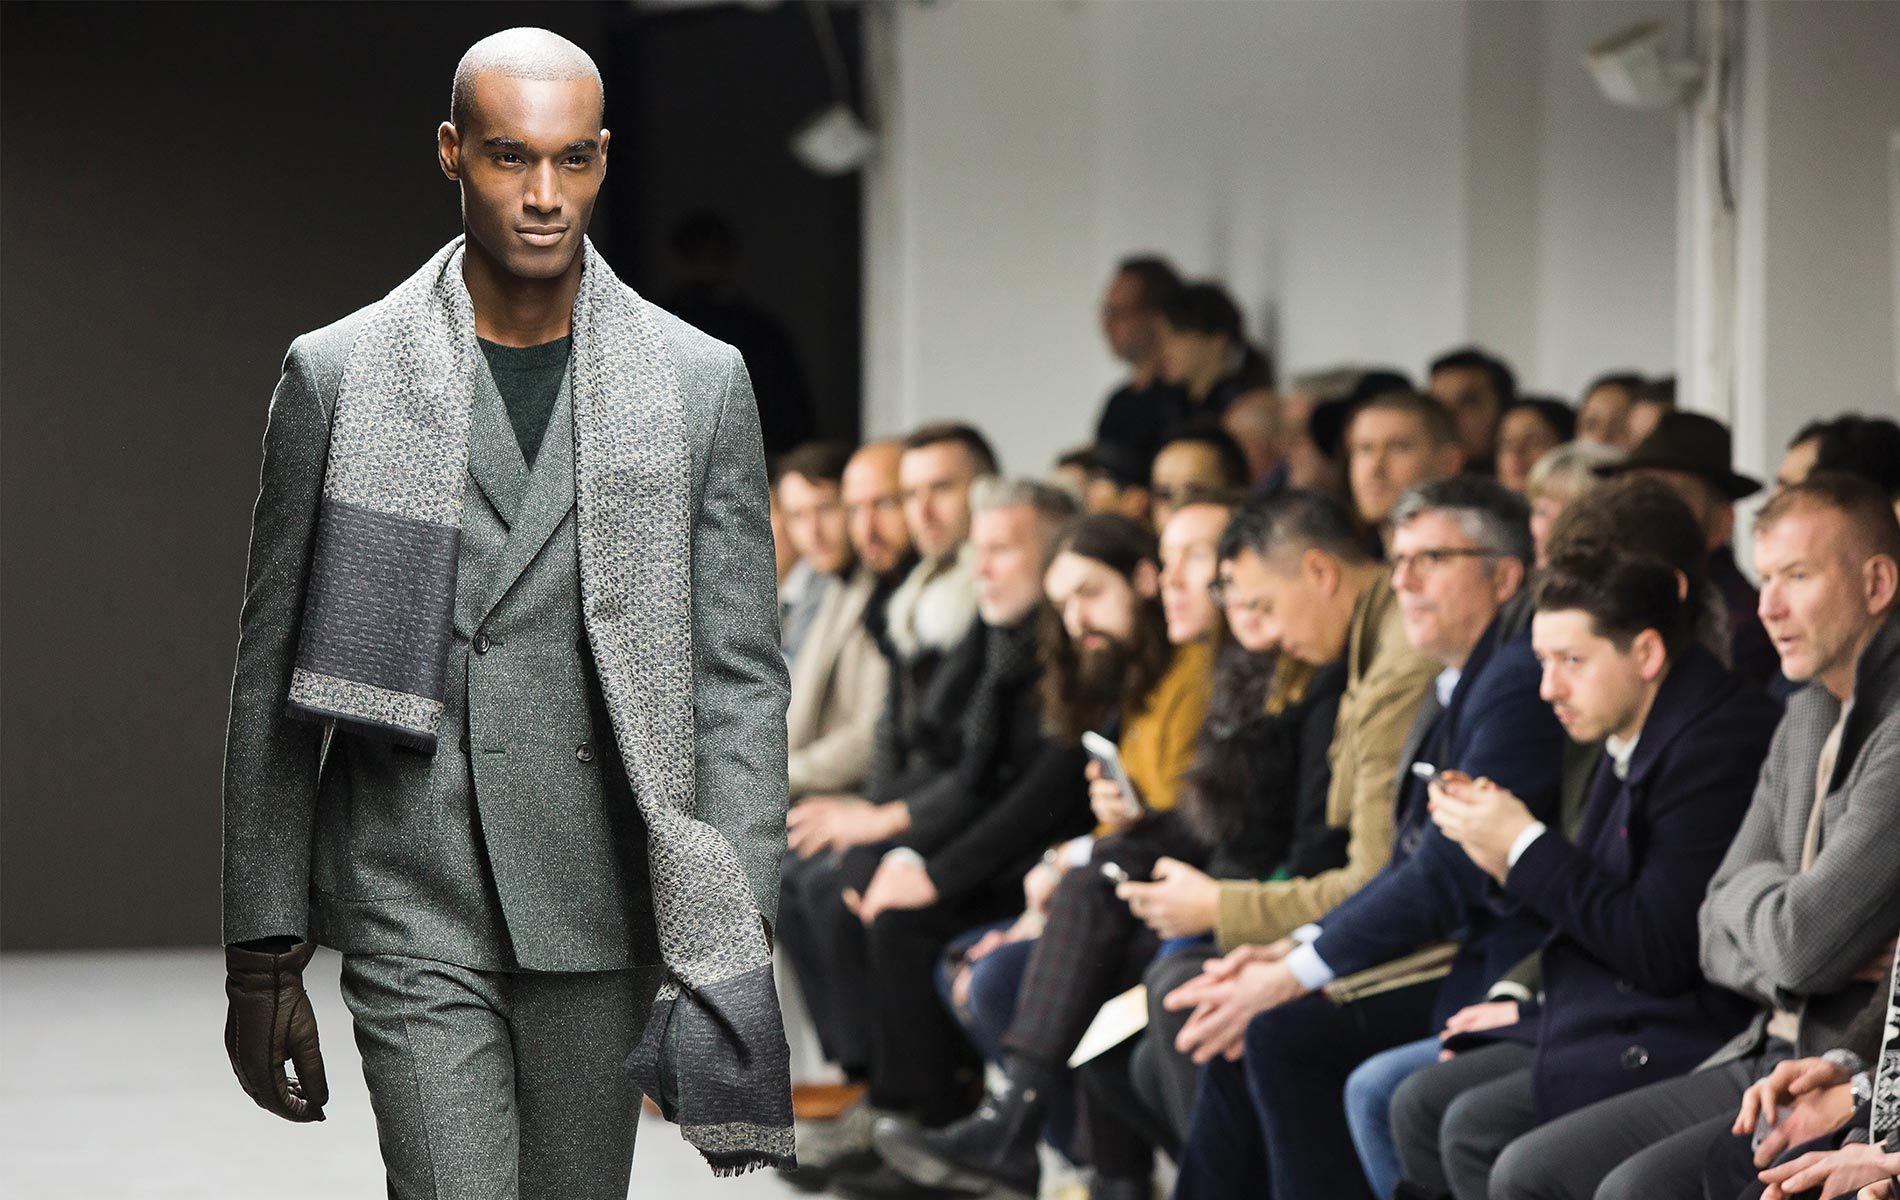 Fashion menswear model walking down the catwalk at London's Fashion Week Fall Winter 2015